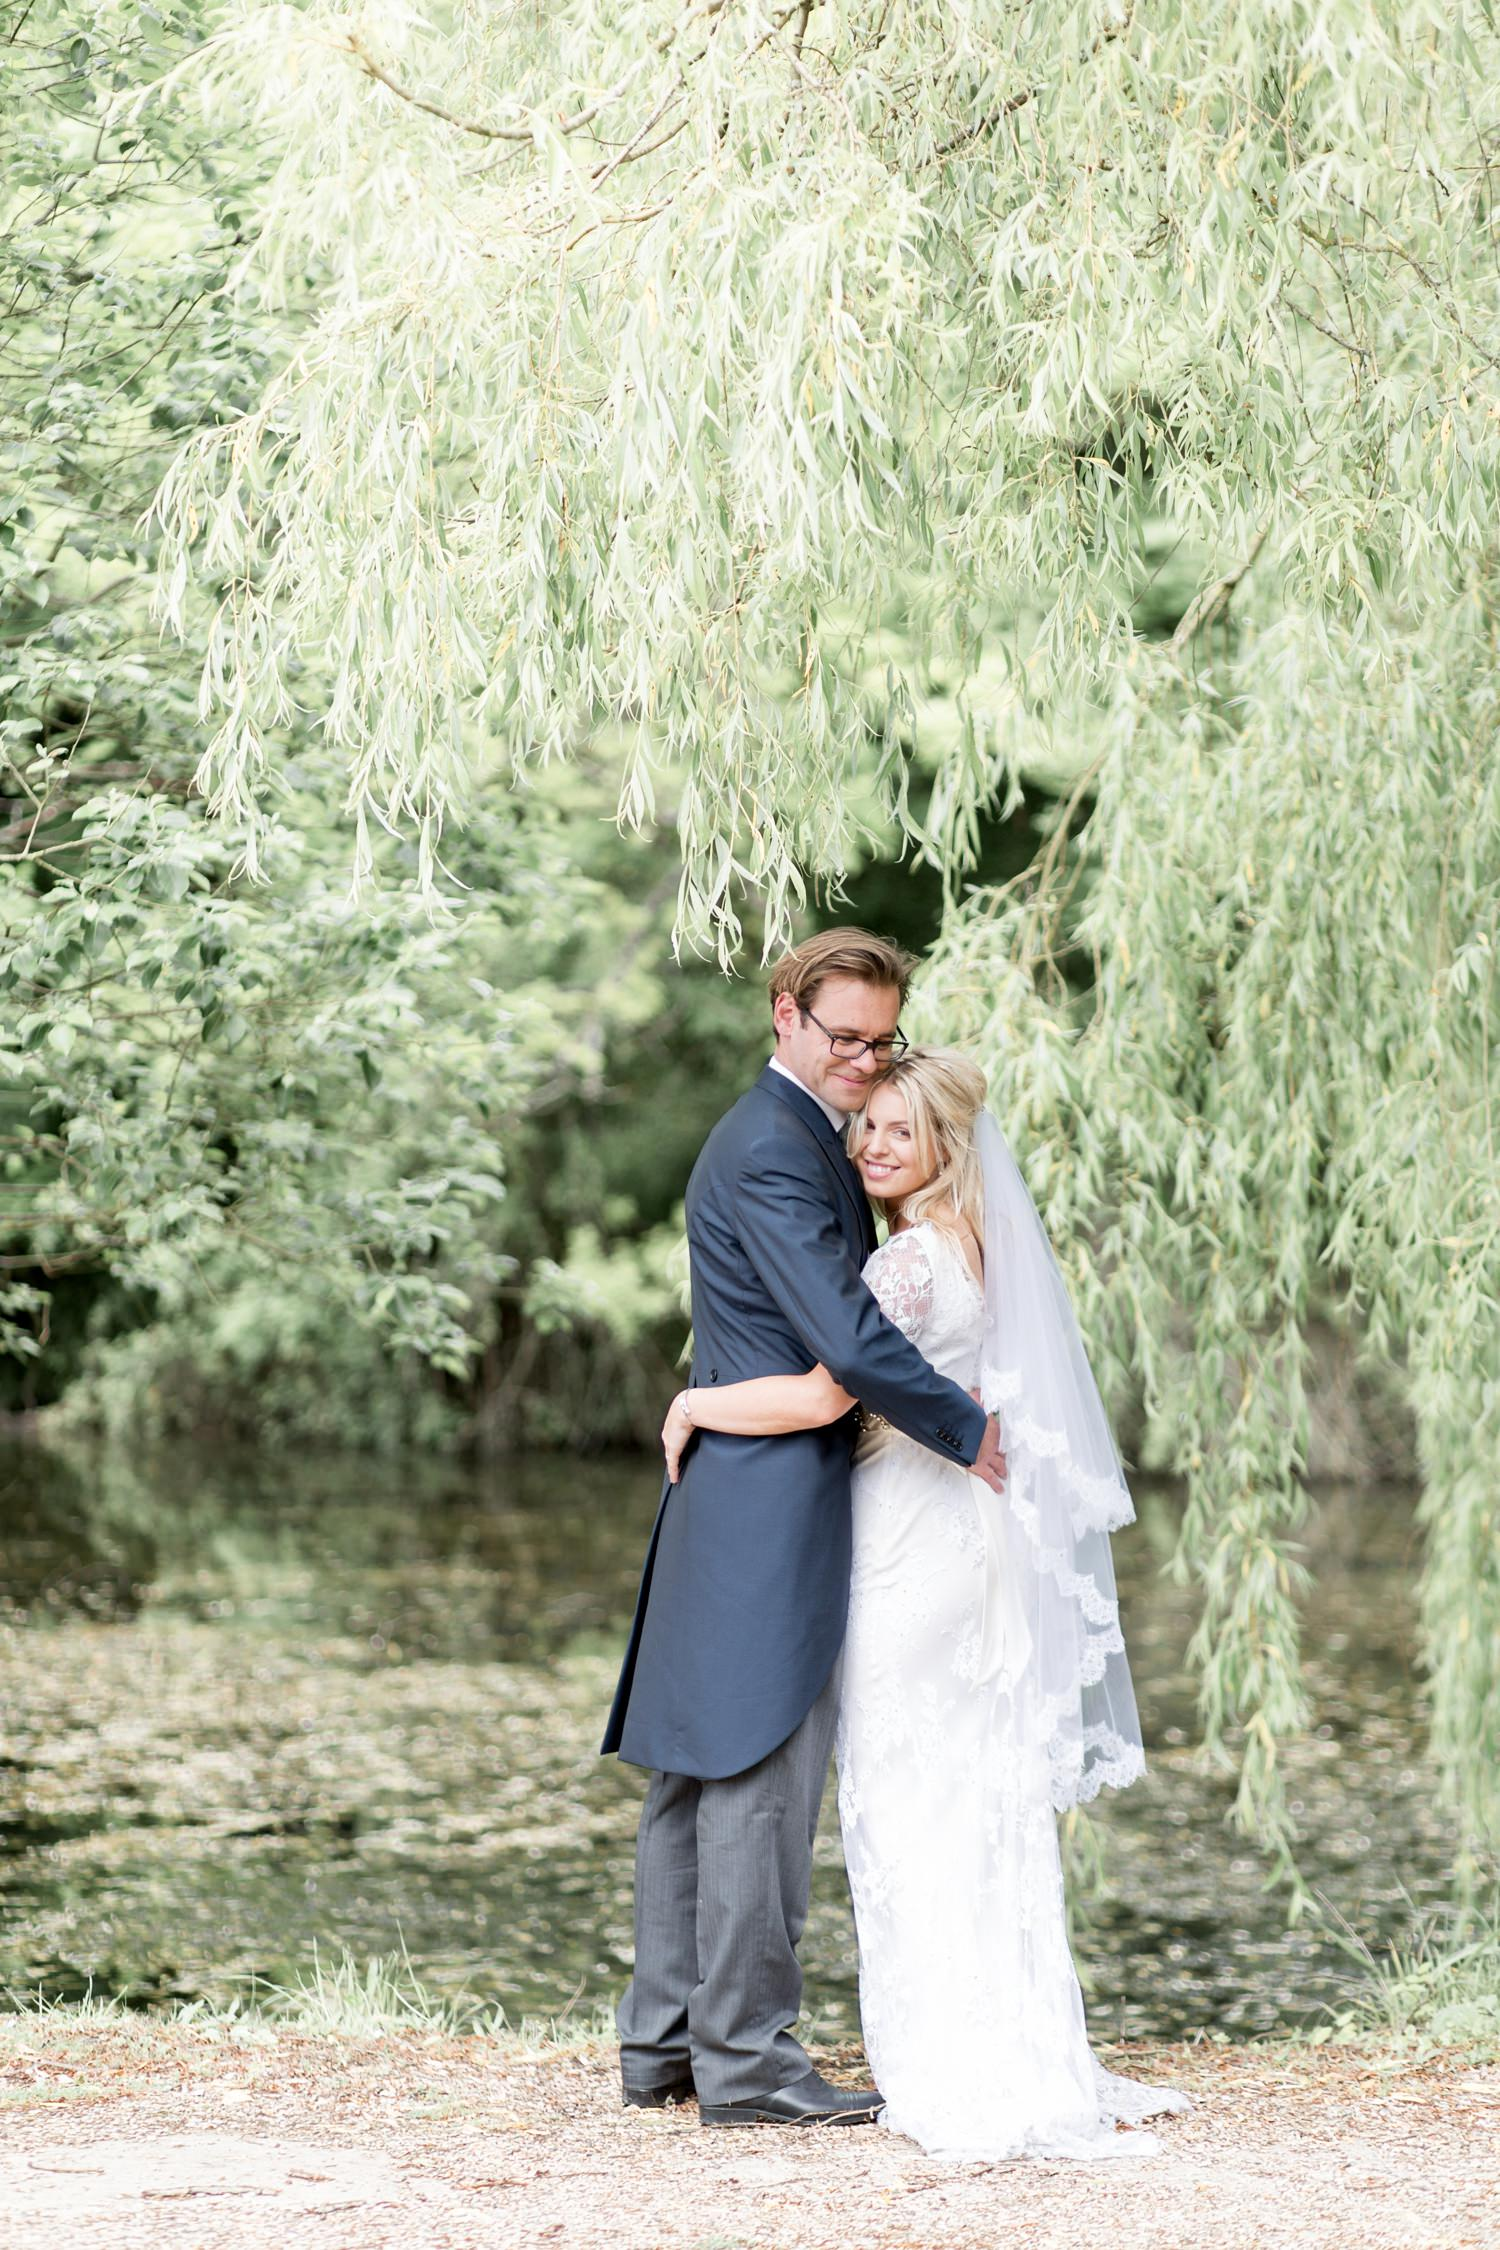 Emily & Jonathan's Cambridgeshire wedding - couple standing under weeping willow